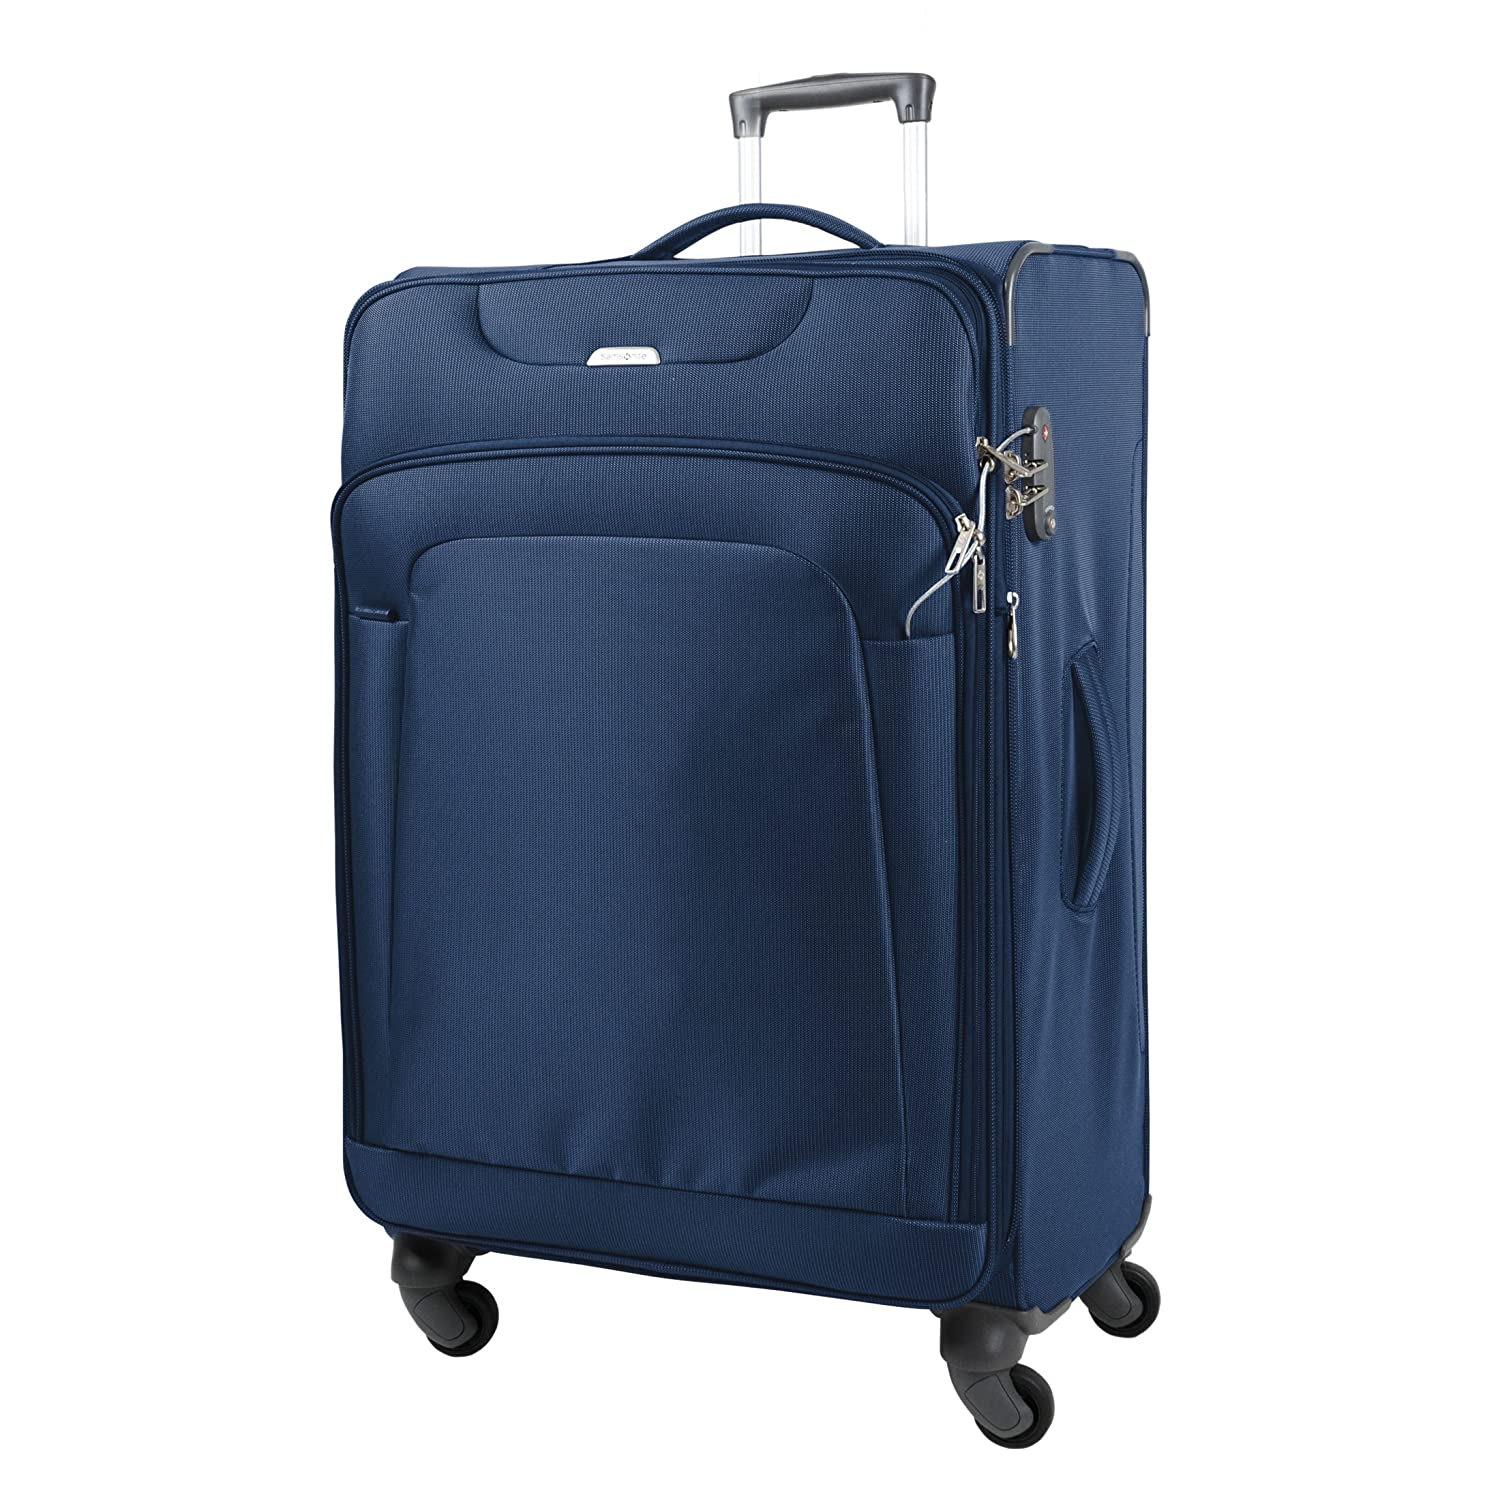 Samsonite Maletas y trolleys 50249 Azul 121.5 liters: Amazon.es: Equipaje